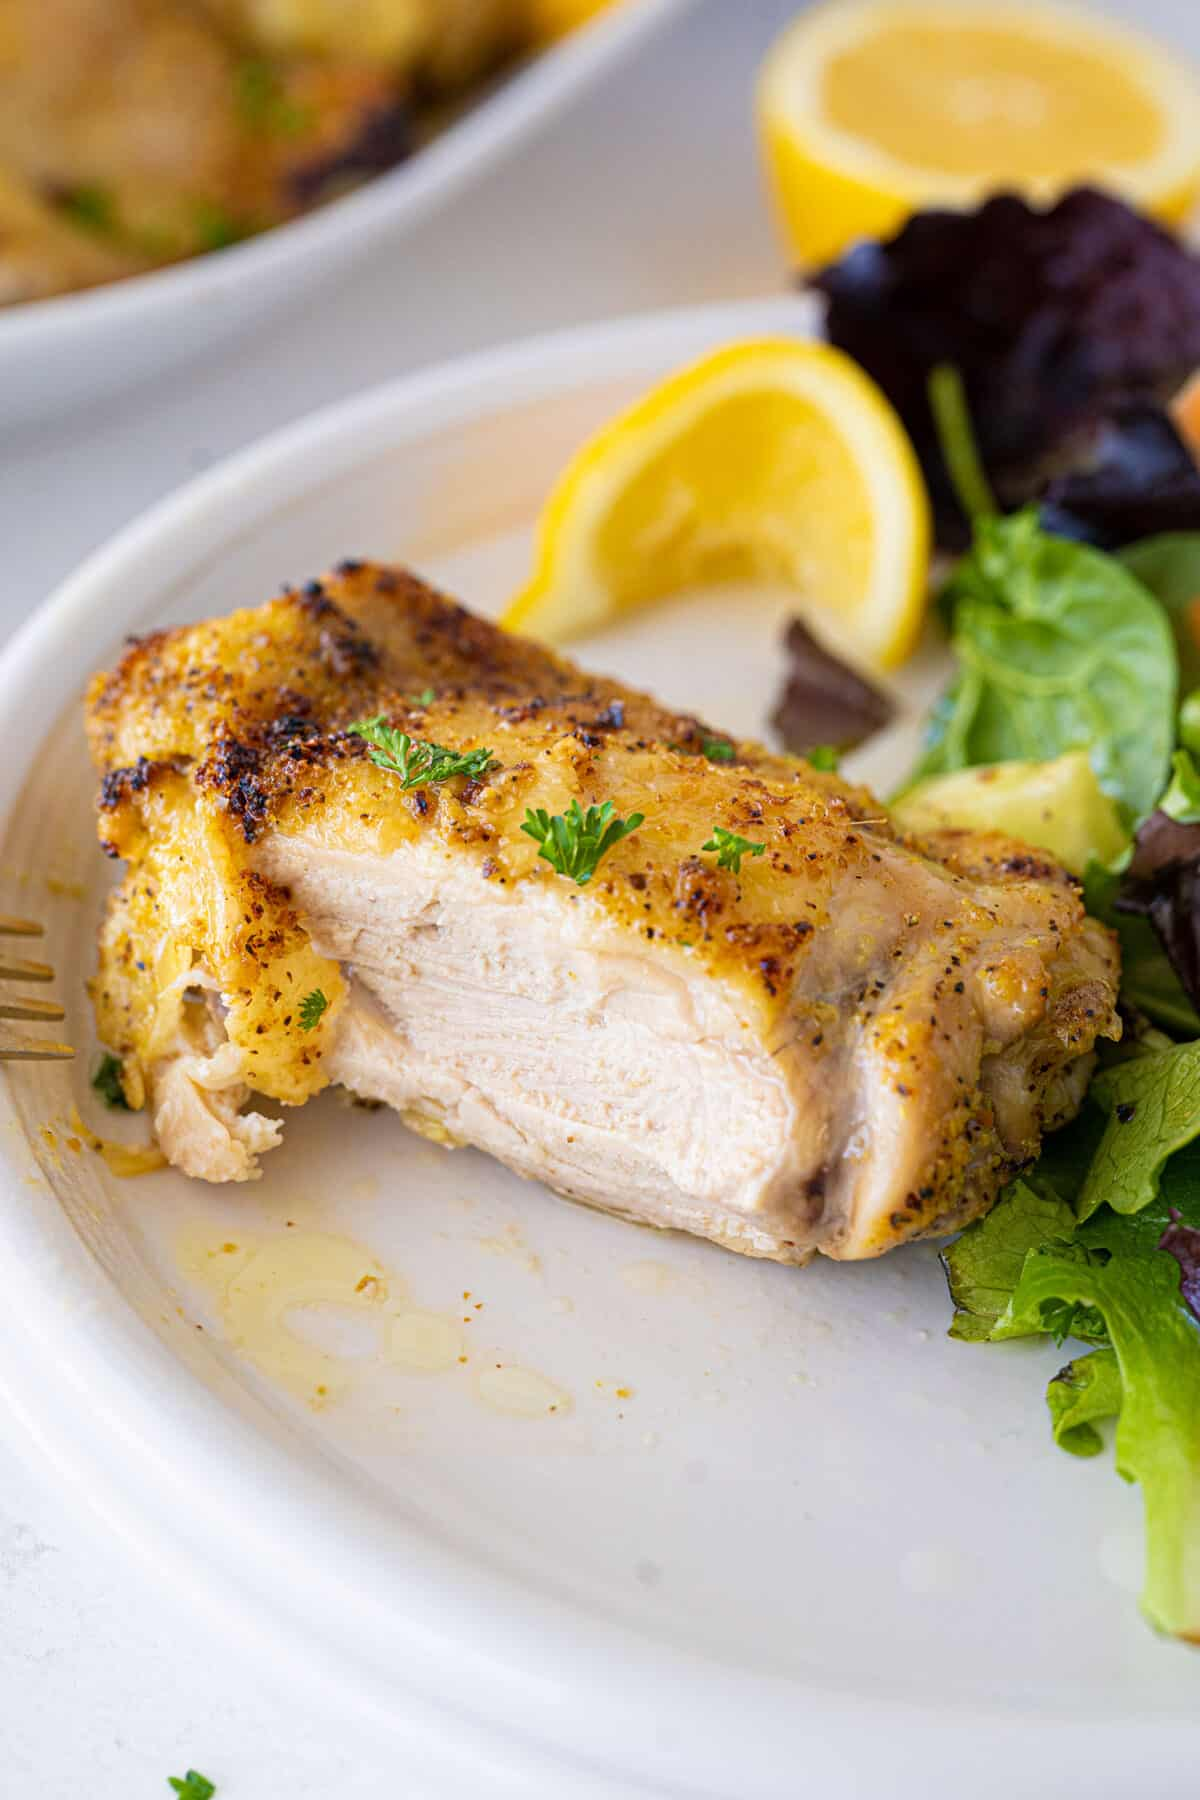 cooked lemon pepper chicken thigh cut in half